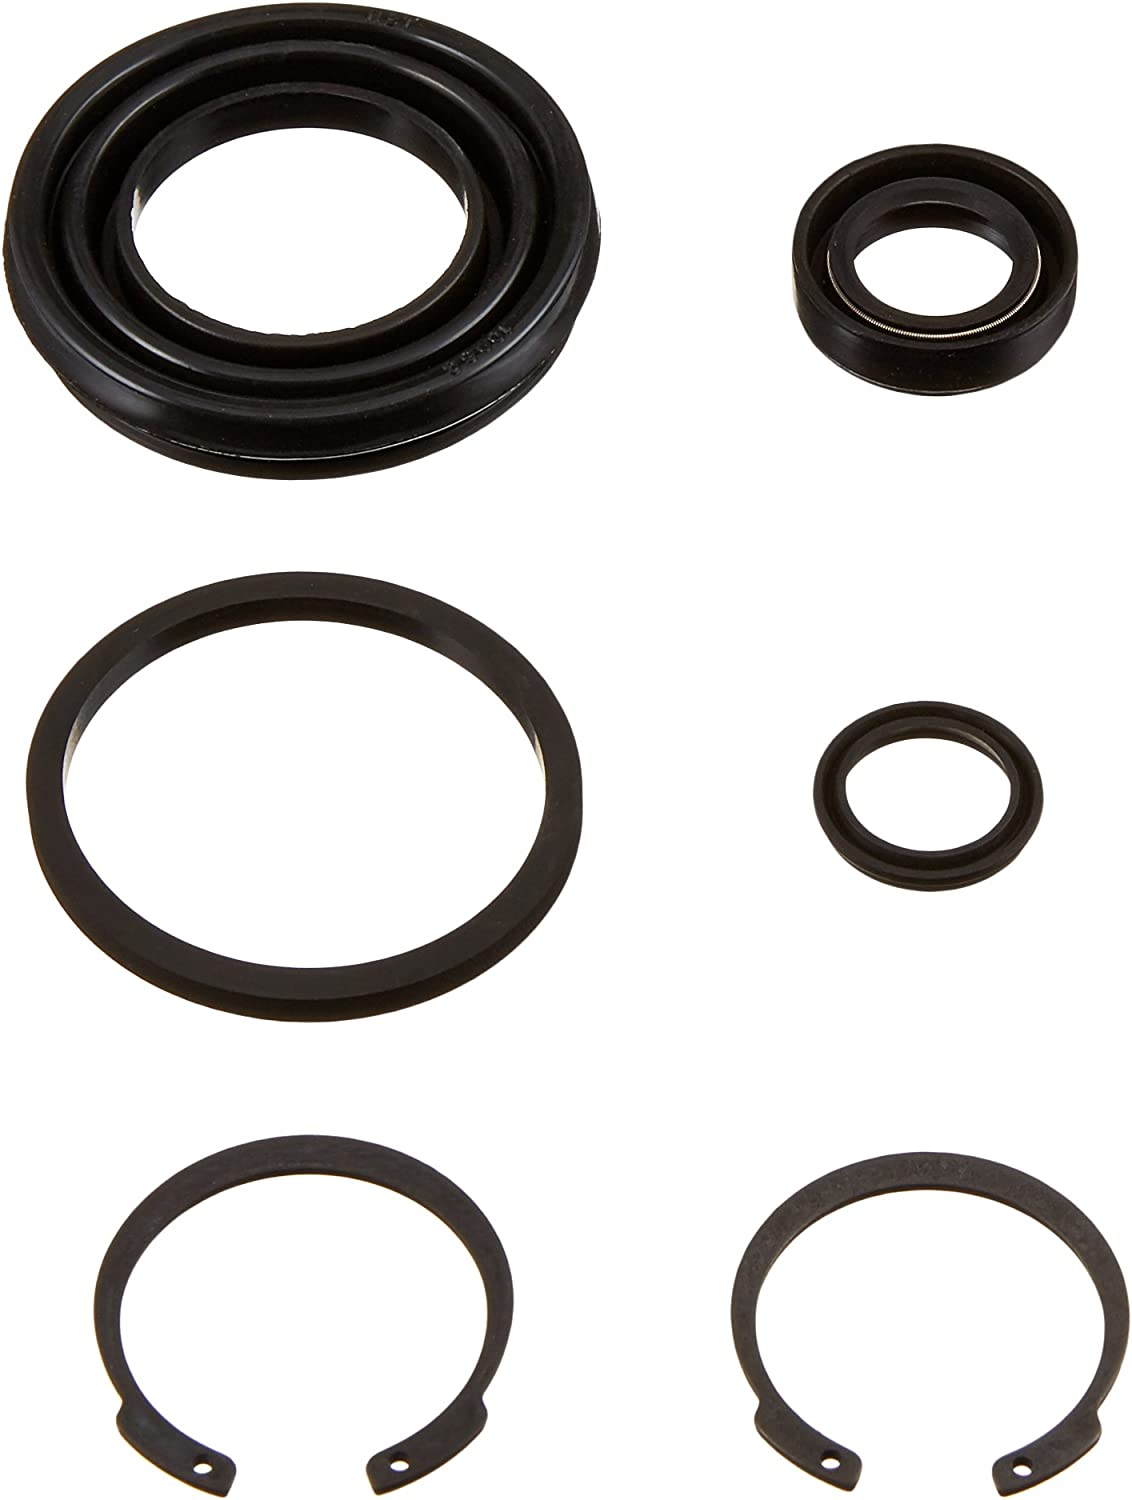 Centric Parts Disc Brake Caliper Repair Kit P//N:143.44035